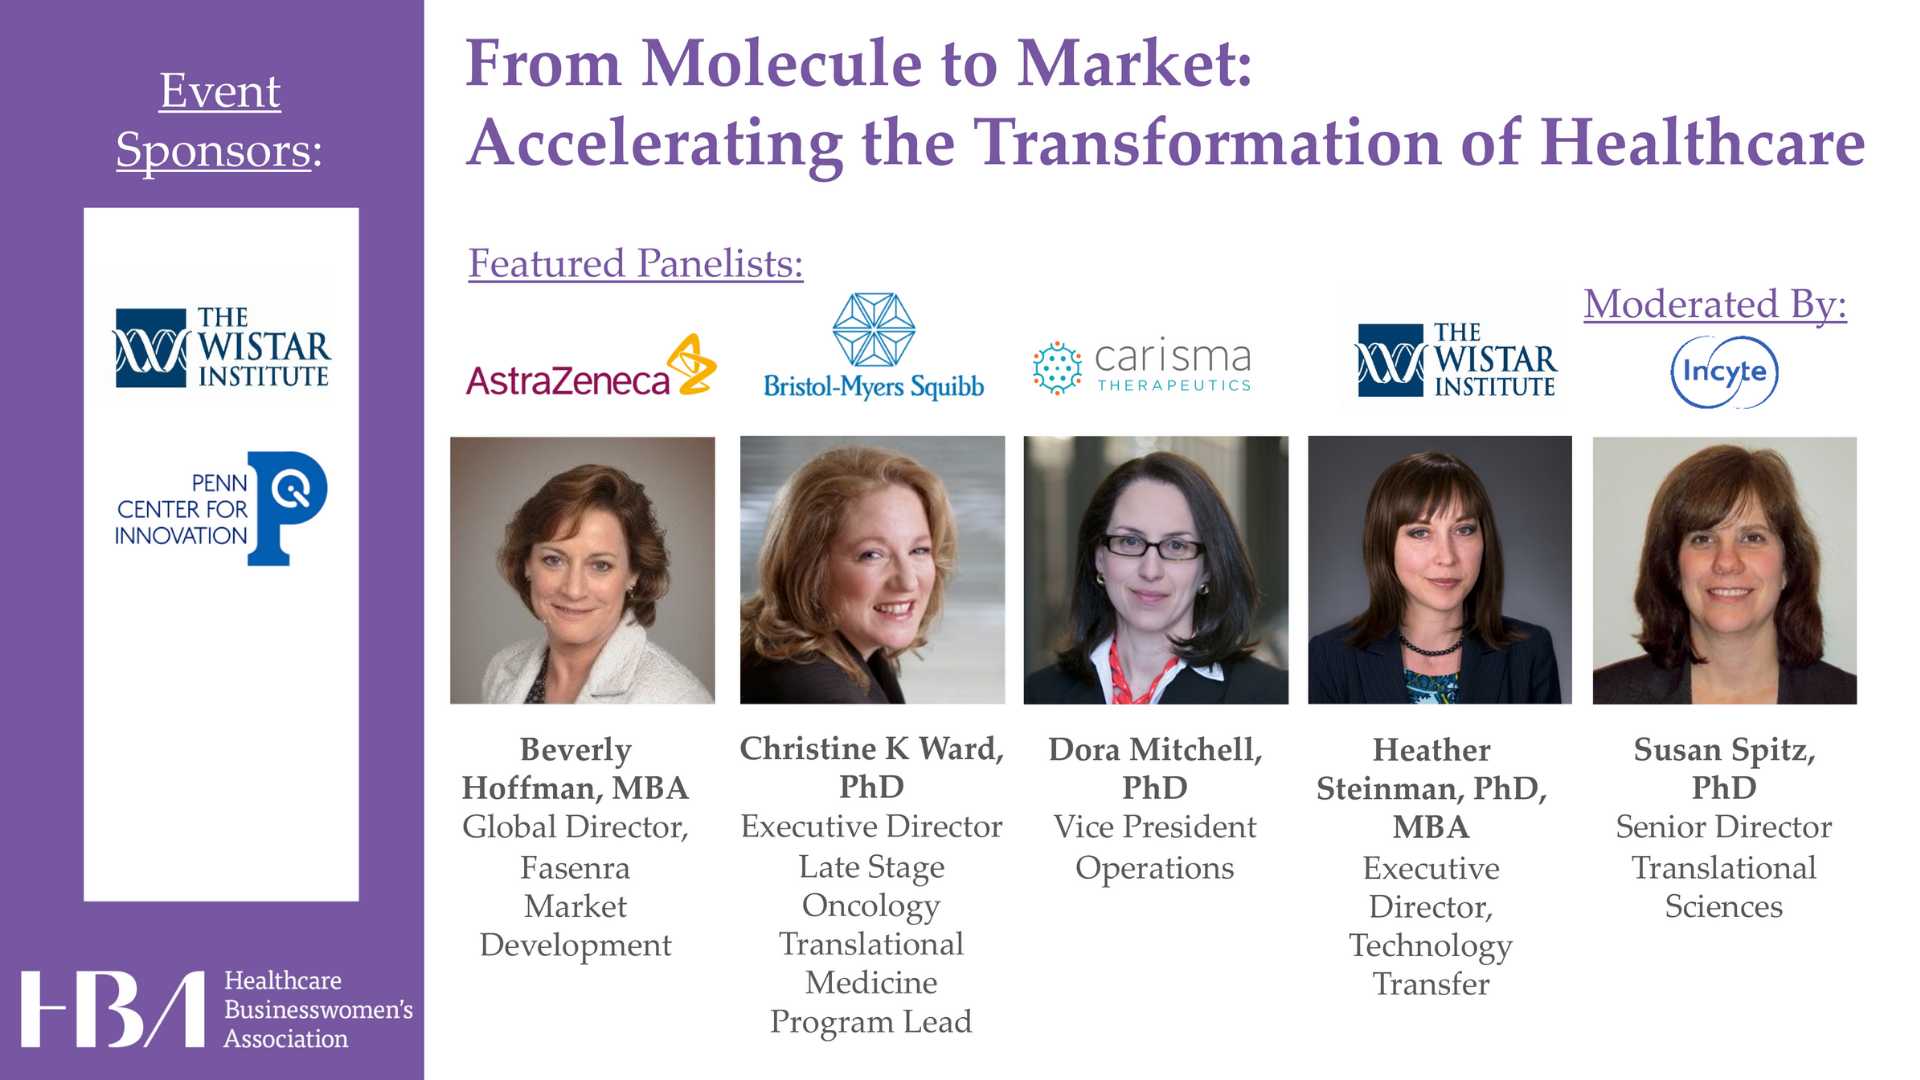 From Molecule to Market: Accelerating the Transformation of Healthcare